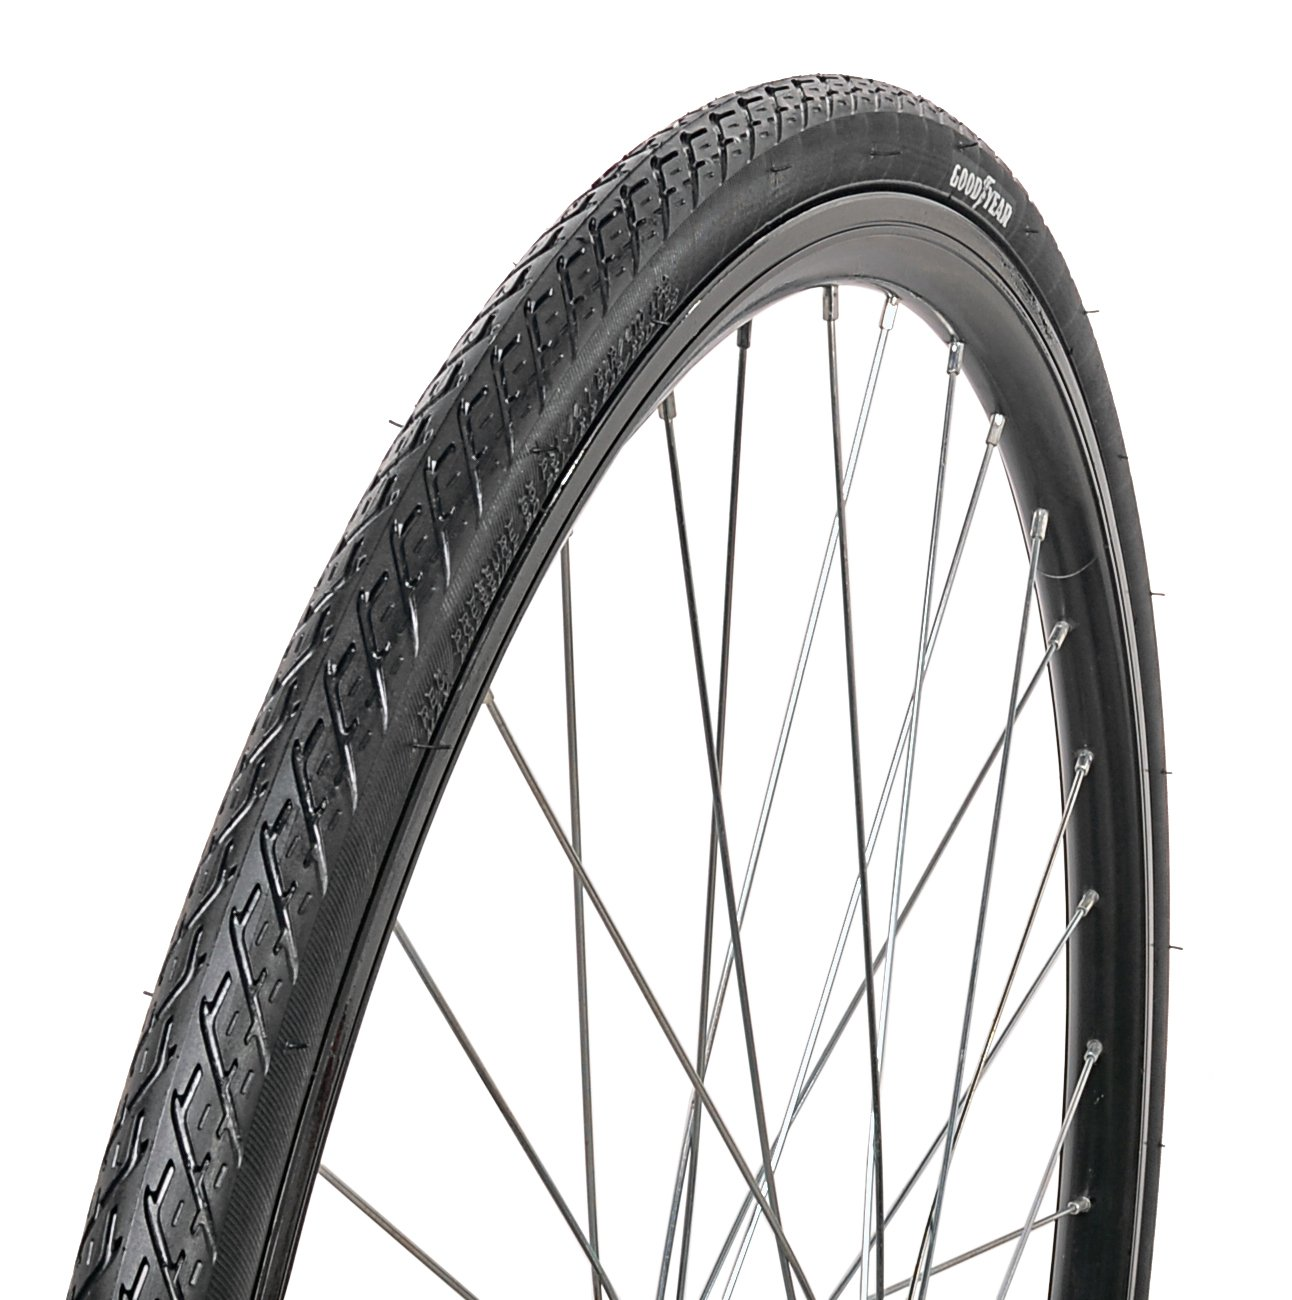 Goodyear Folding Bead Road Bike Tire, 700 cm x 28, Black